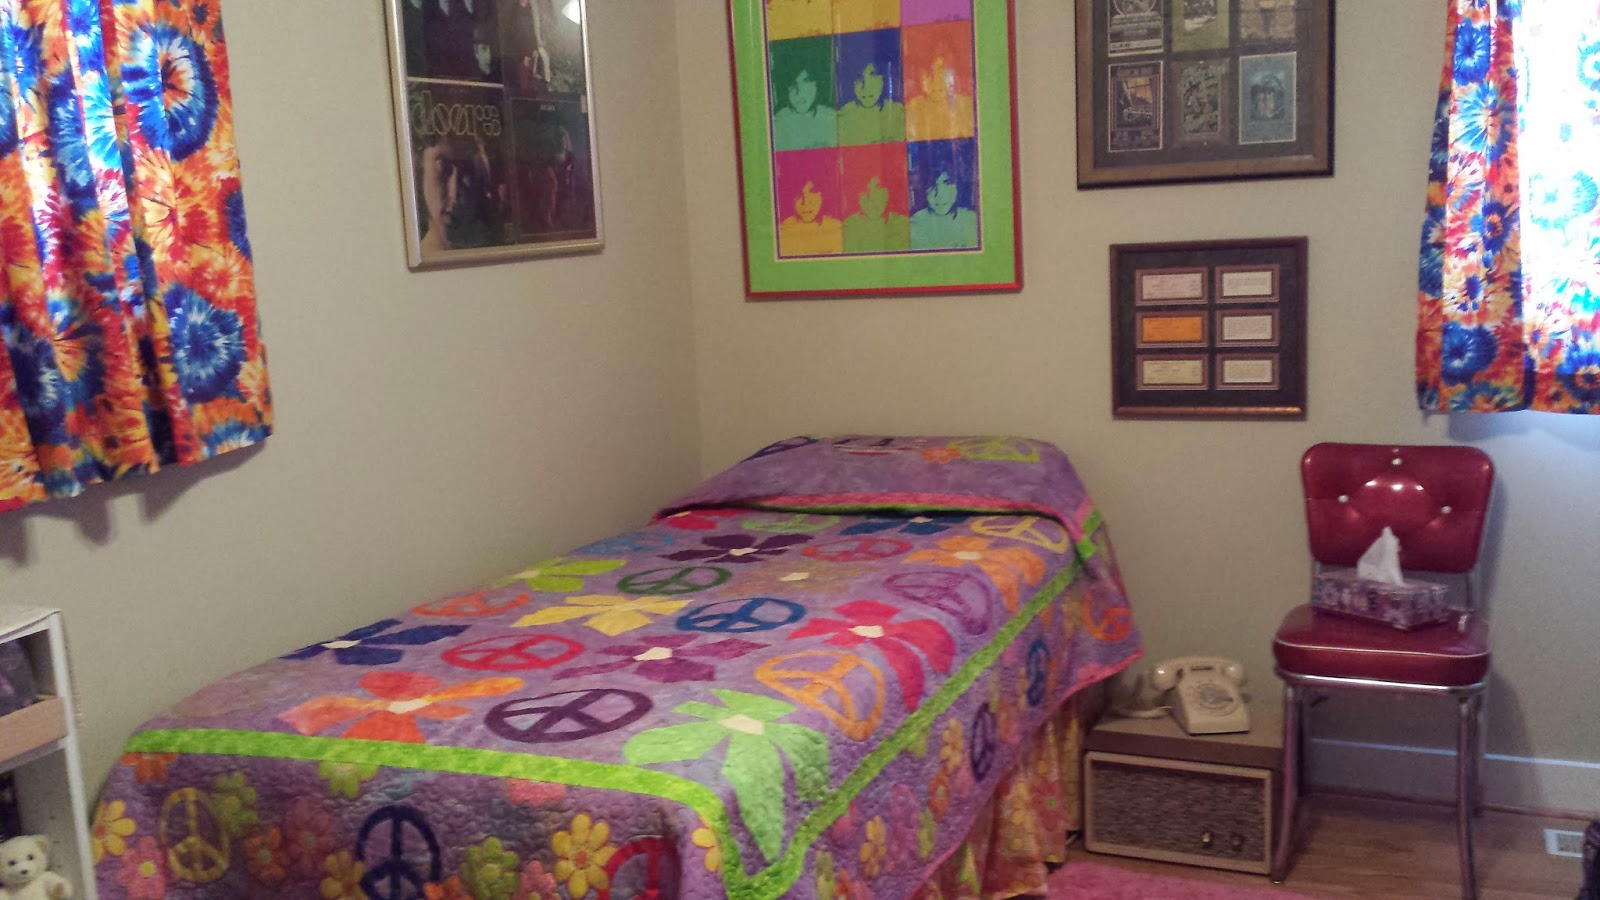 Peace Sign Bedroom Karen Dewitt Author Our 60s Room Inspired By The Beatles50